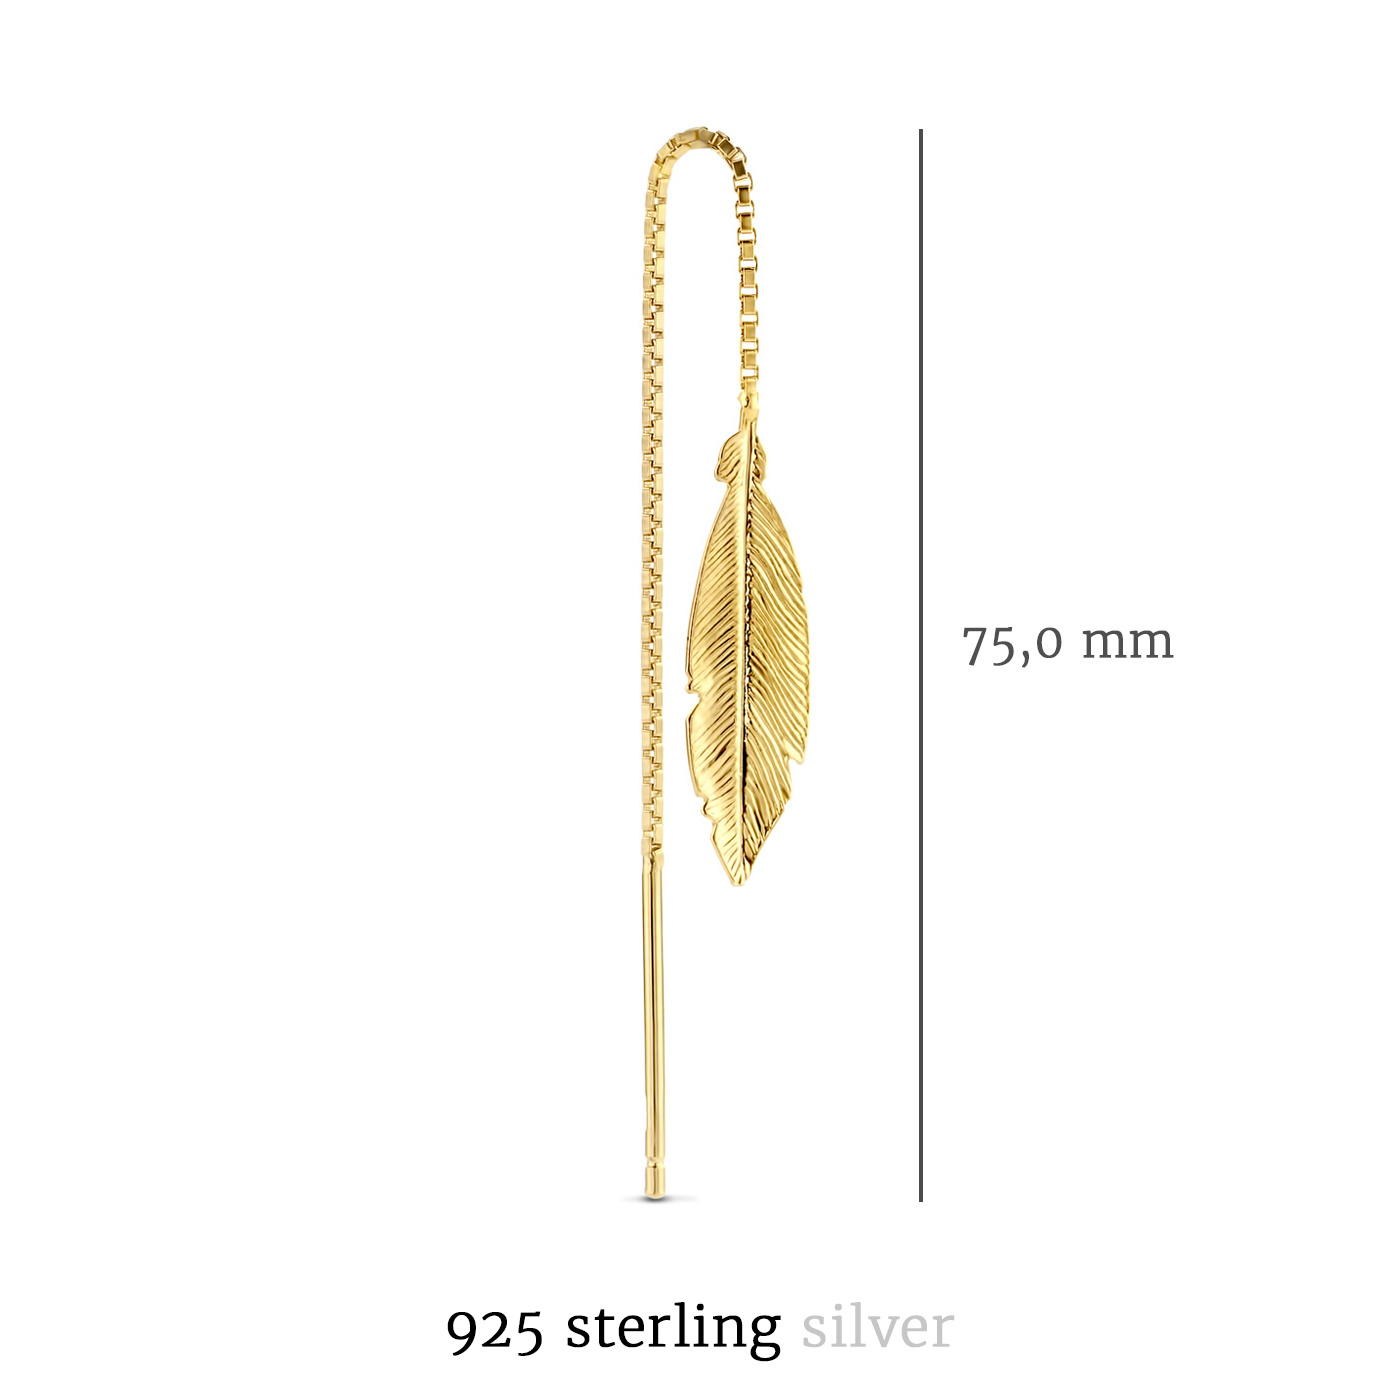 Selected Jewels Julie Lucie 925 sterling zilveren goudkleurige oorhangers met veertjes